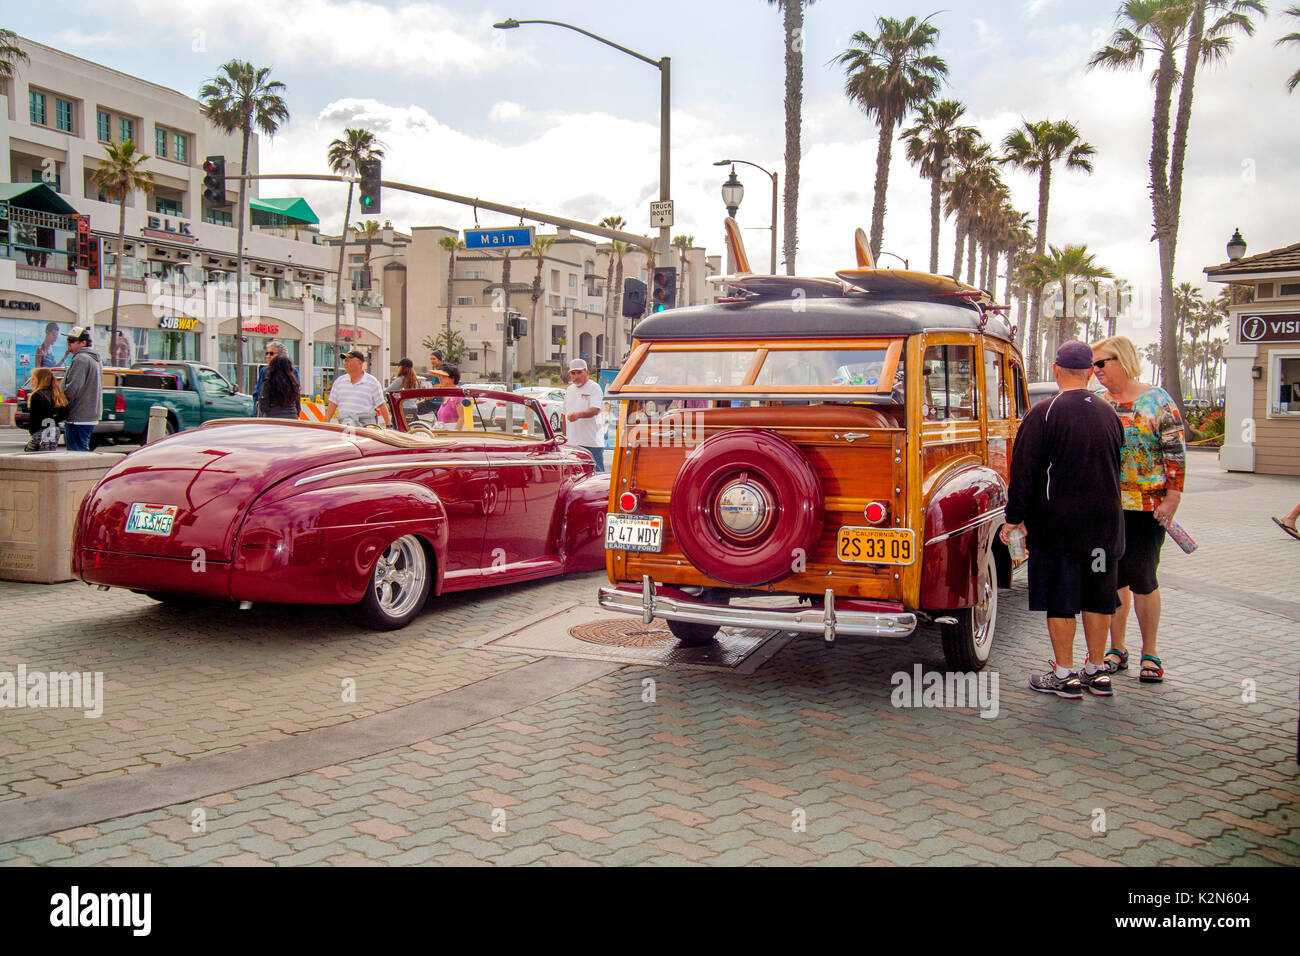 A 1947 Ford convertible and 1947 Ford Super Deluxe 'woodie' station wagon are on display at a classic car show in downtown Huntington Beach, CA.  Note  surfboards on roof, antique license plate and palm trees. - Stock Image